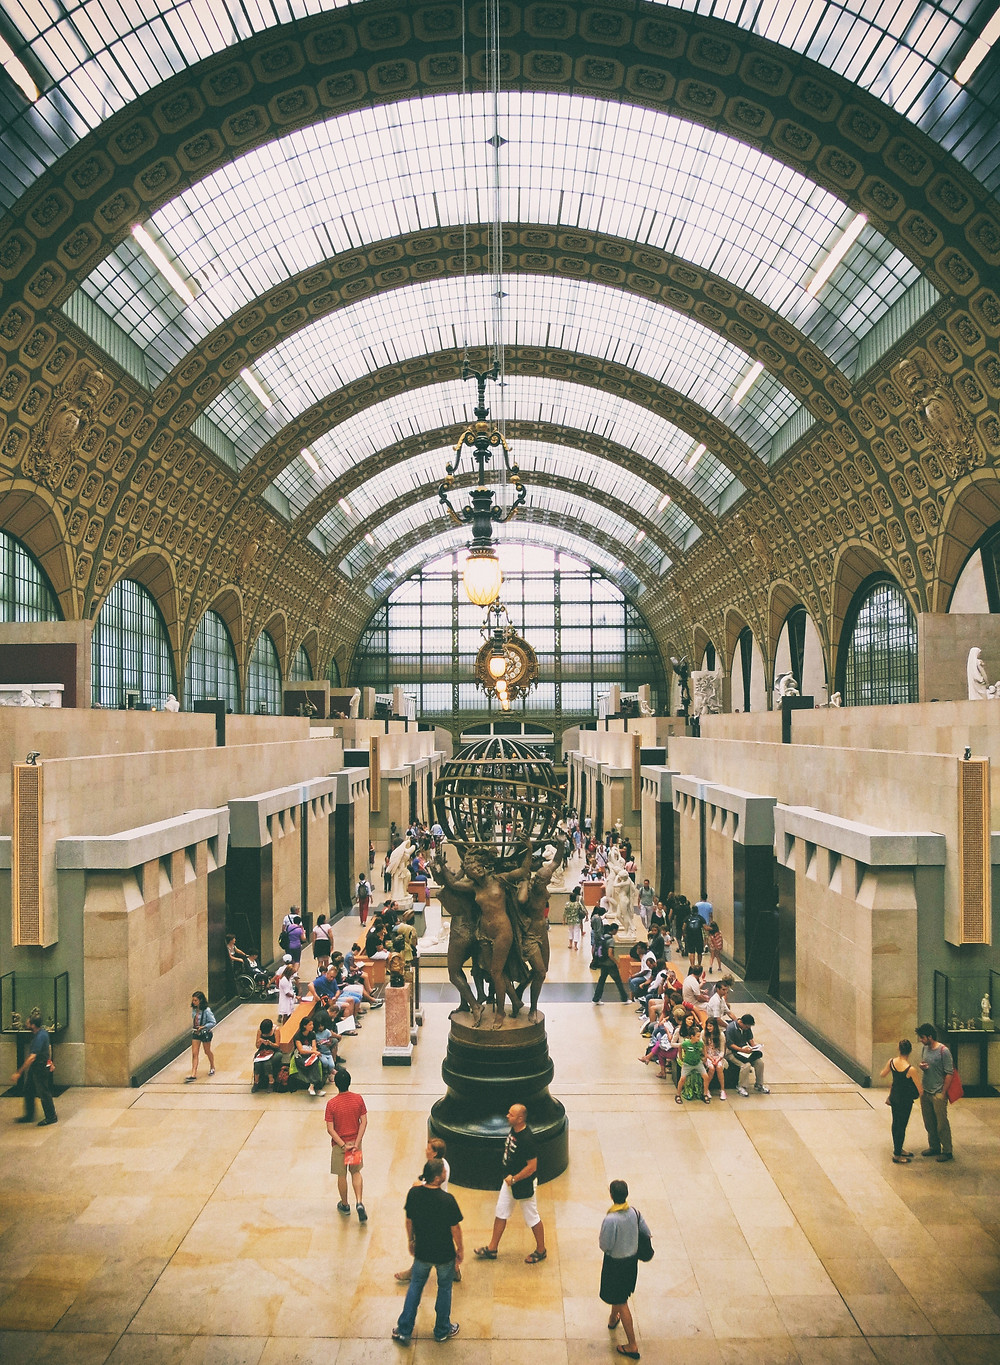 The crowded hall of Musée d'Orsay, Paris